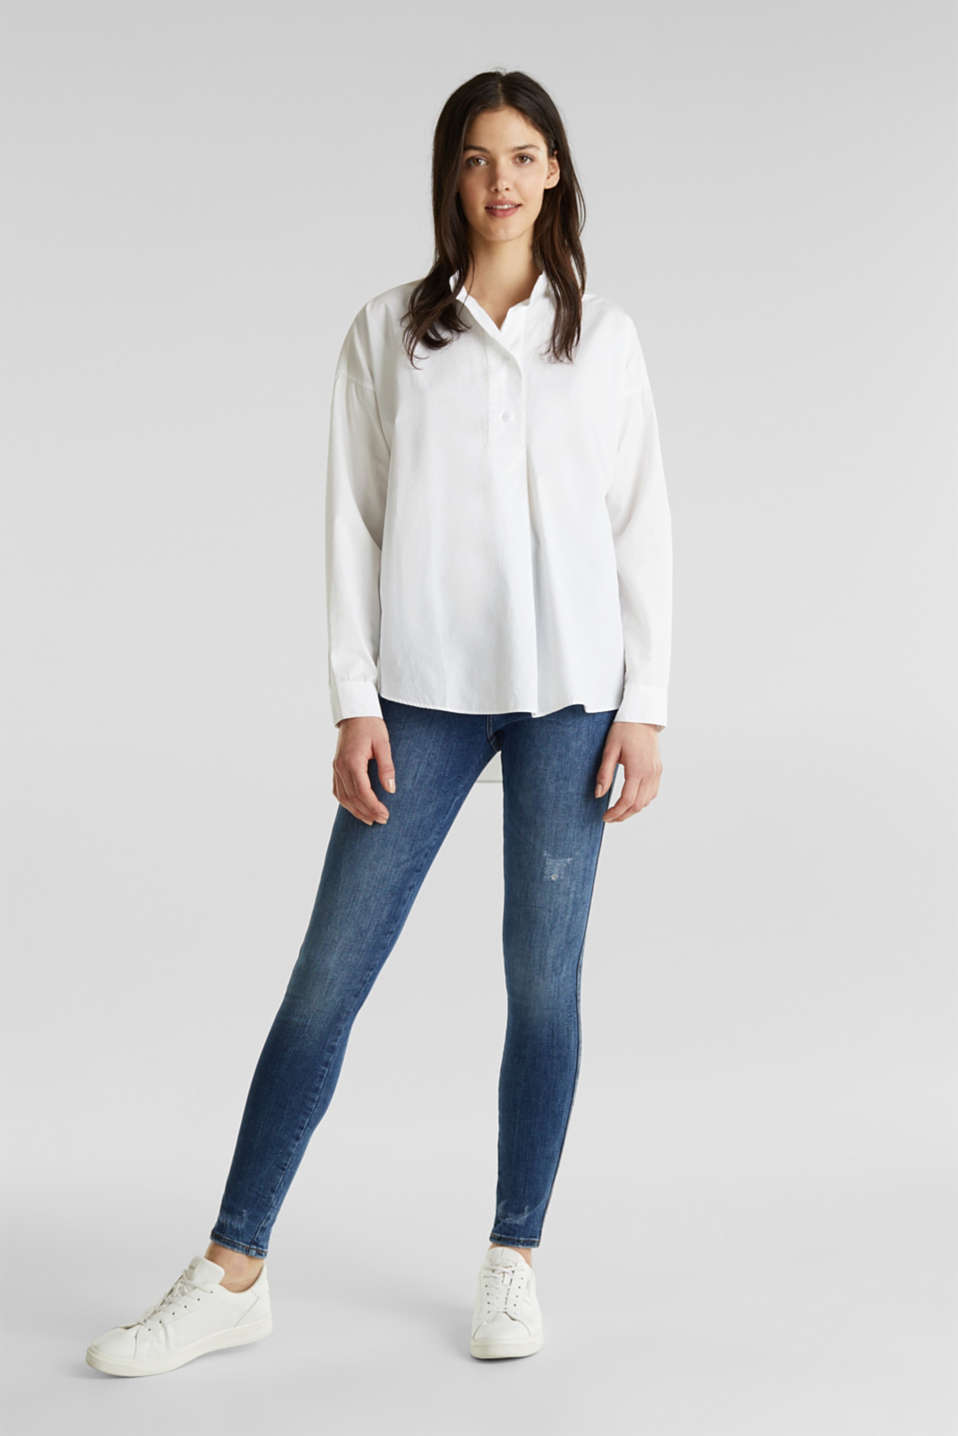 Slip-on blouse with a stand-up collar, 100% cotton